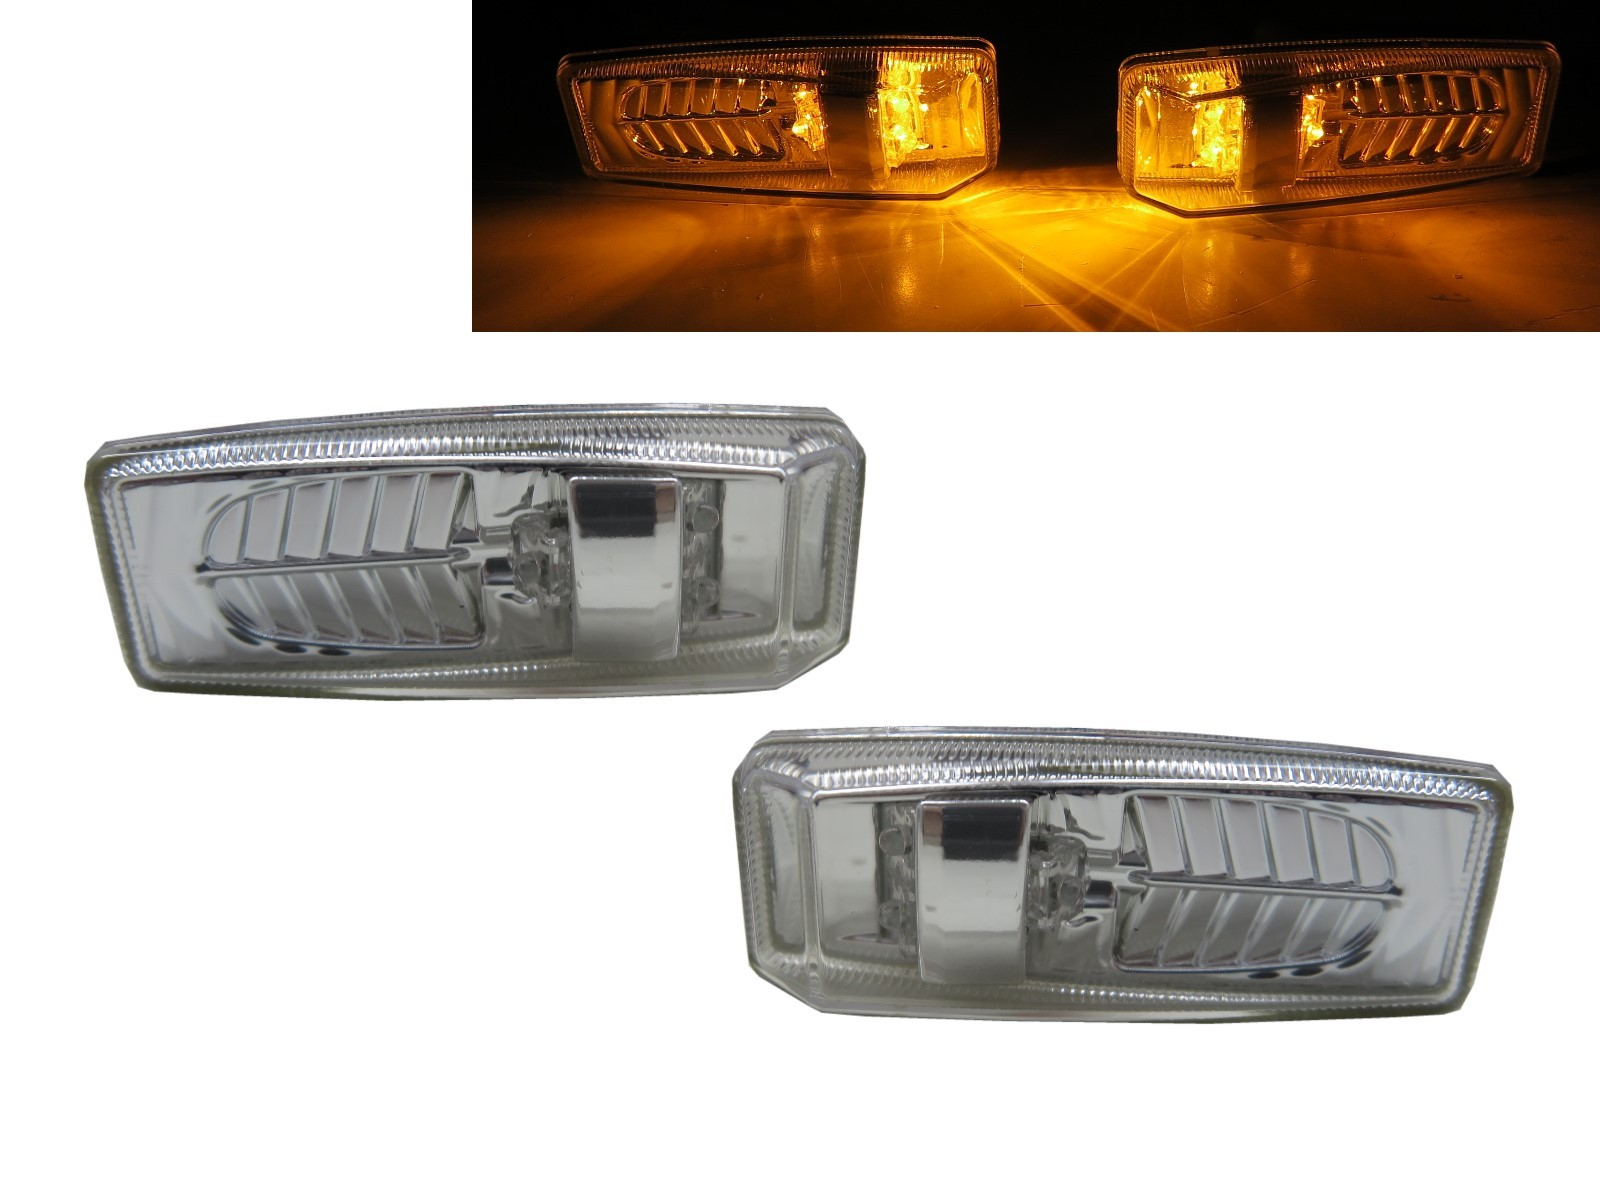 CrazyTheGod SL-CLASS R129 1989-2002 Roadster 2D LED Side Marker Light Lamp Chrome for Mercedes-Benz